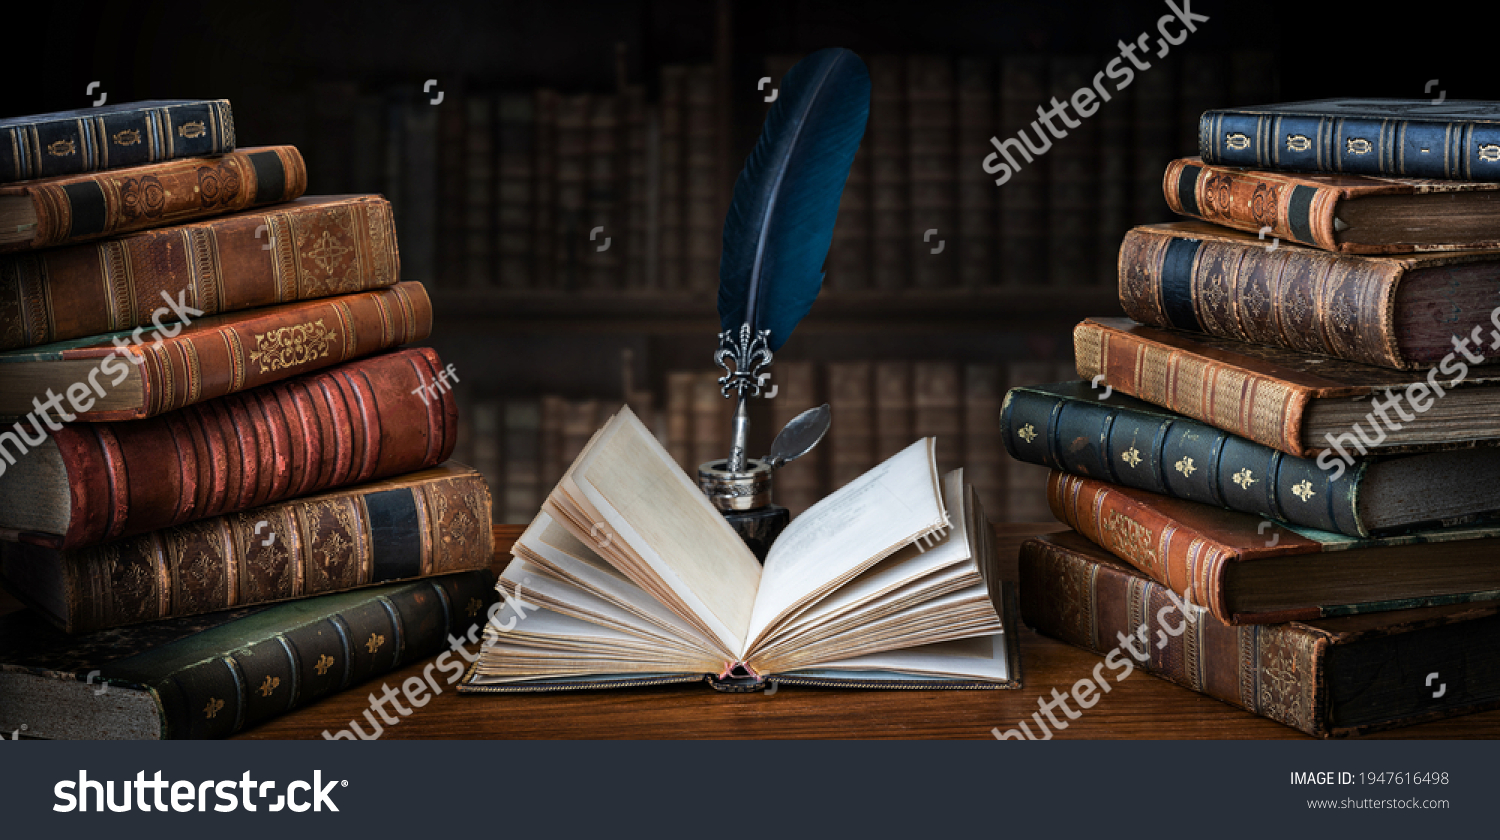 Old books ,quill pen and vintage inkwell on wooden desk in old library. Ancient books historical background. Retro style. Conceptual background on history, education, literature topics. #1947616498